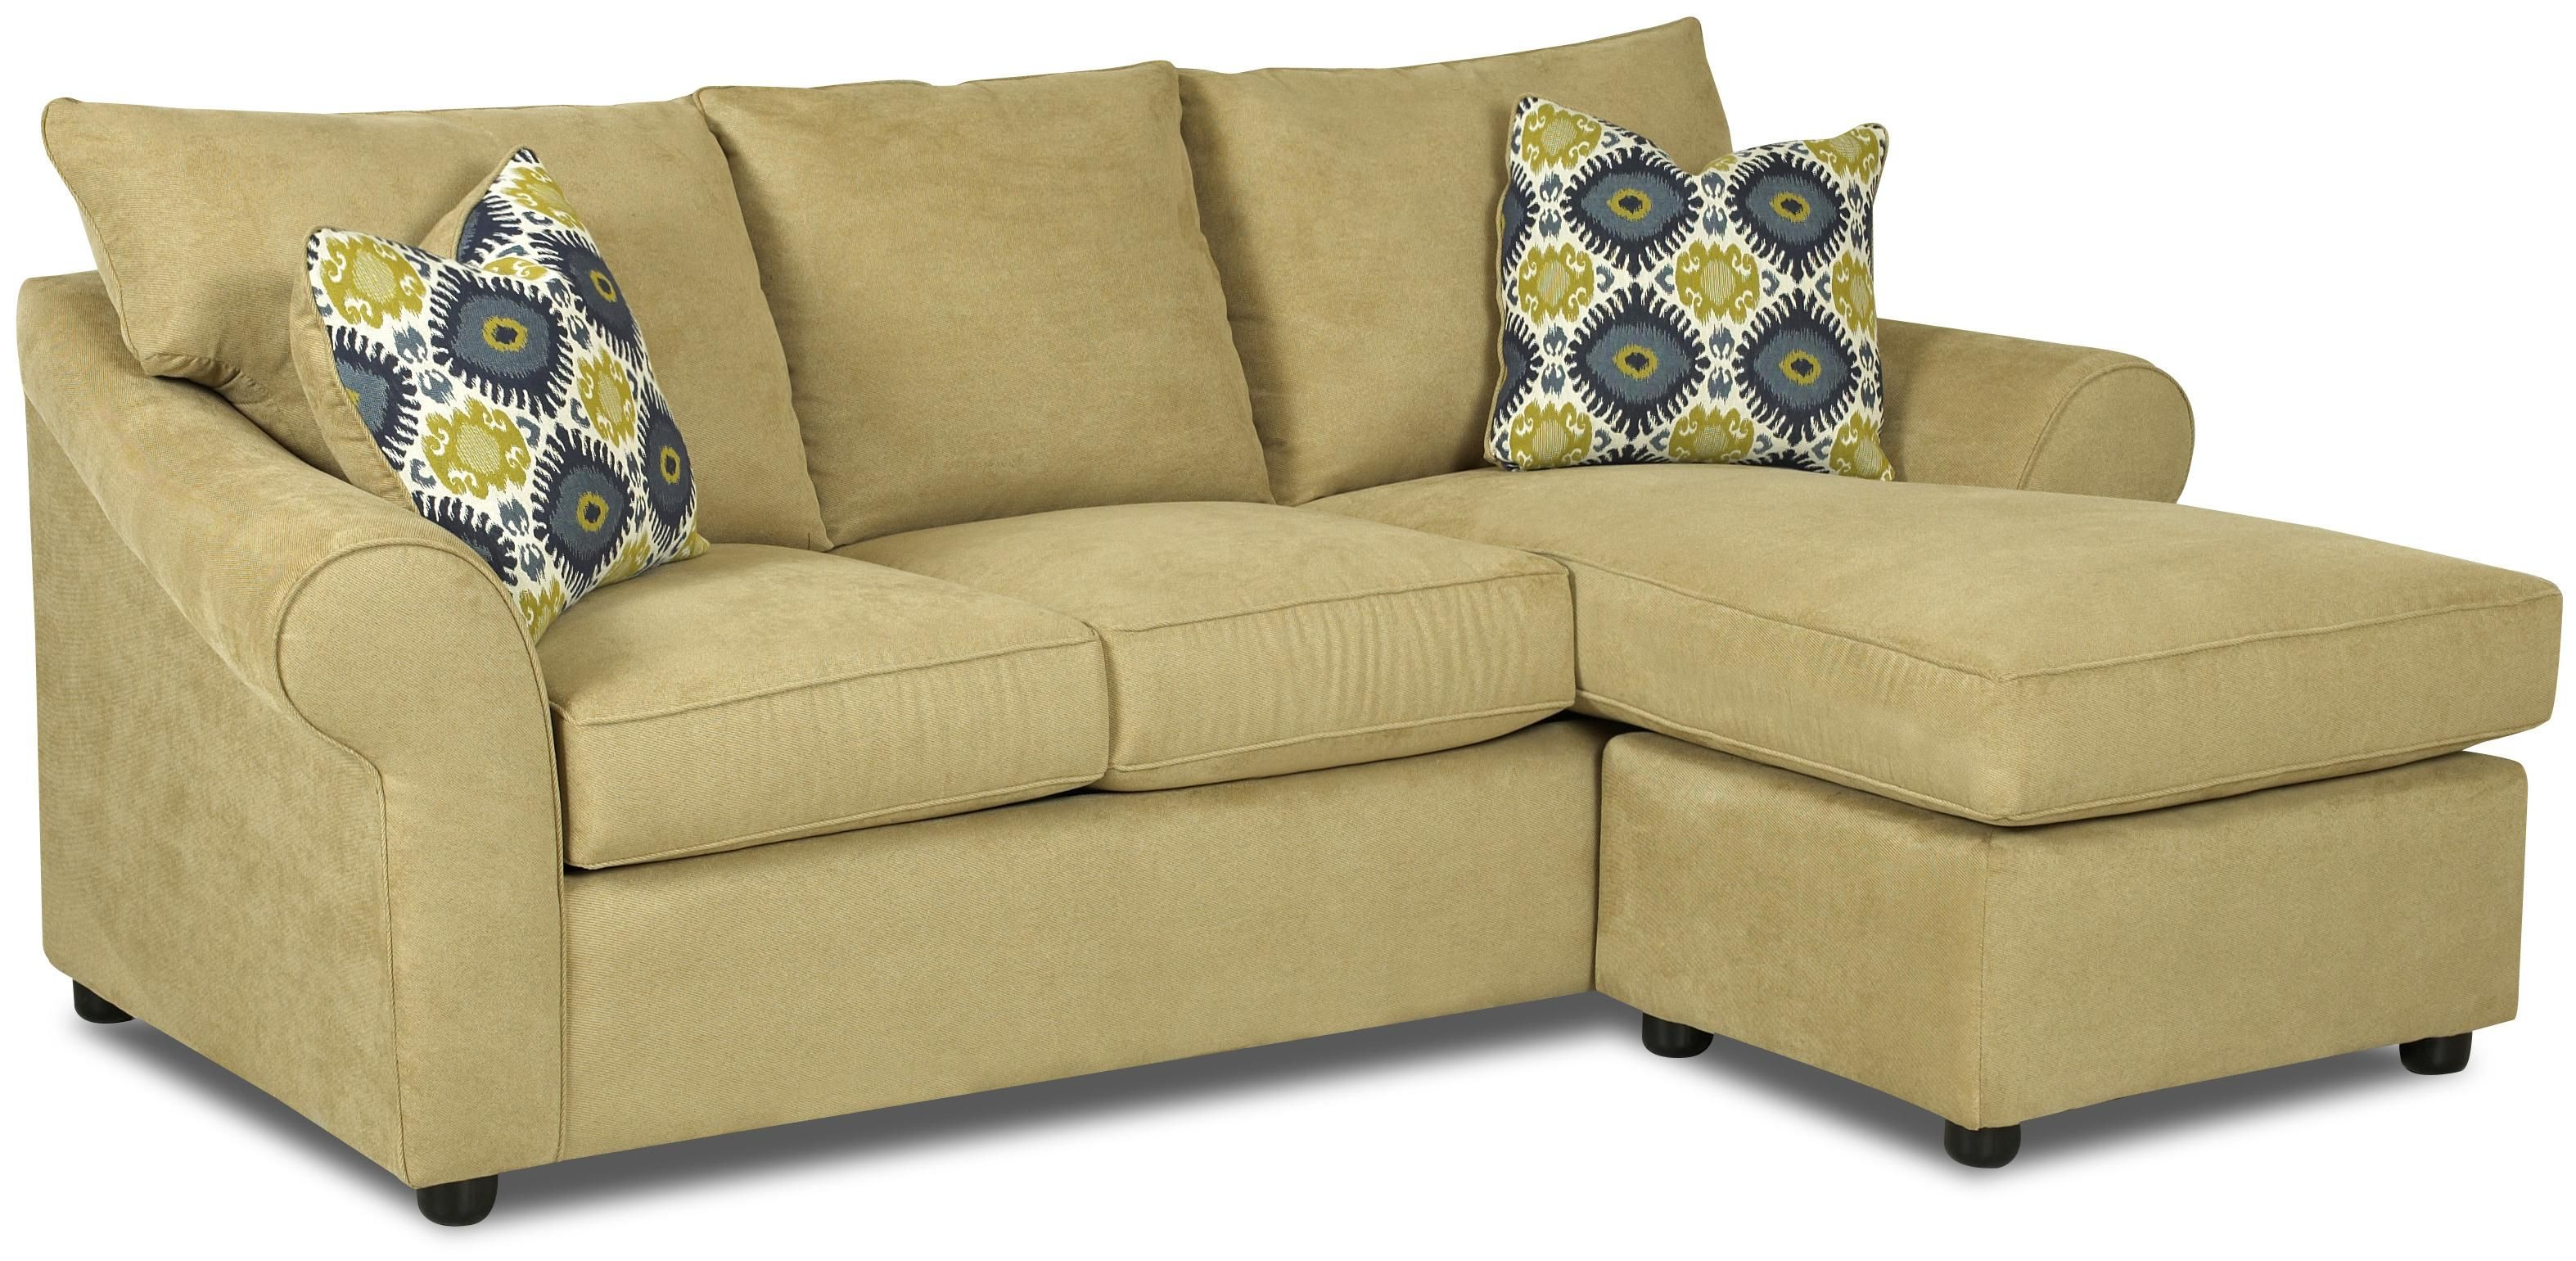 Sofa With Chaise Lounge Couch With Chaise Lounge Attached Folio Sofa With